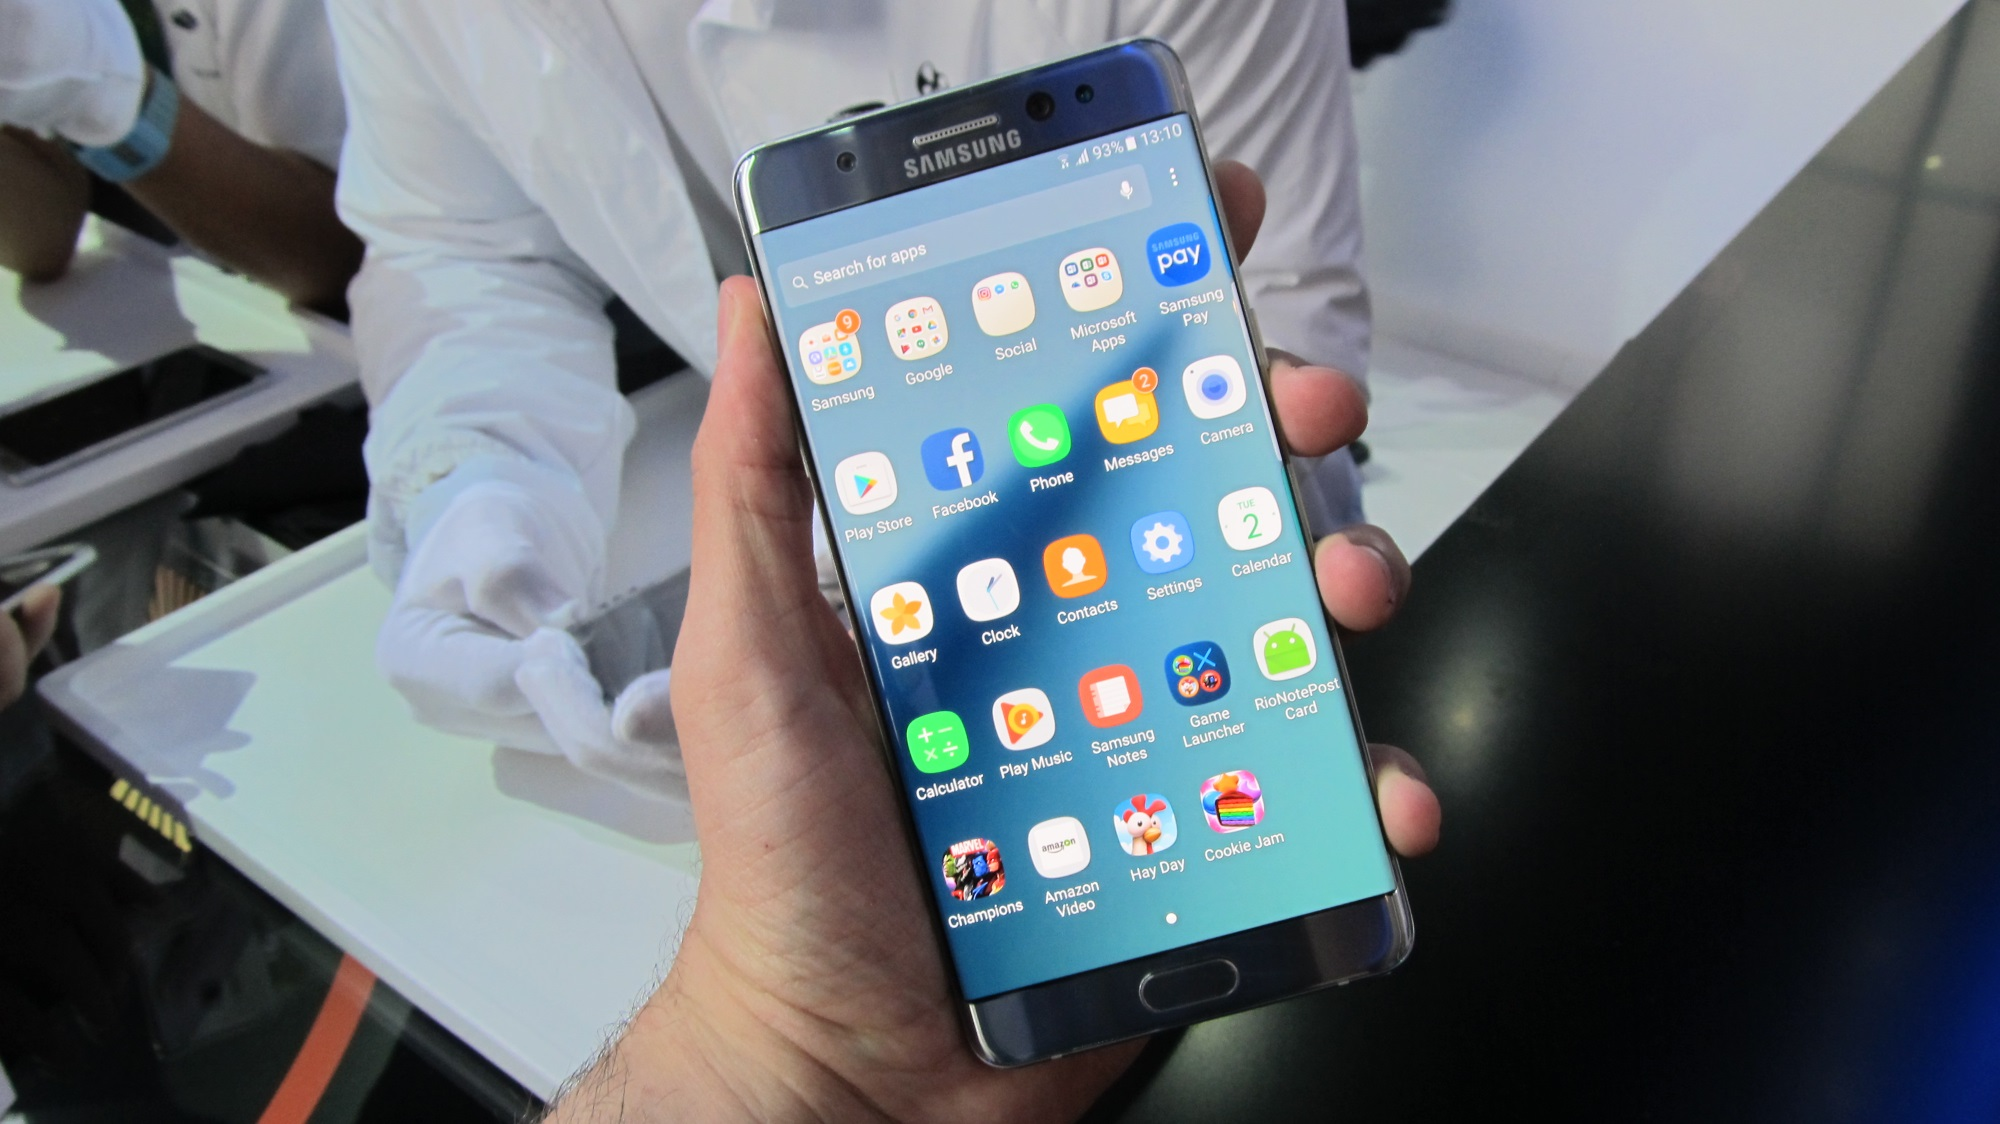 samsung galaxy note 7 hands-on (1)